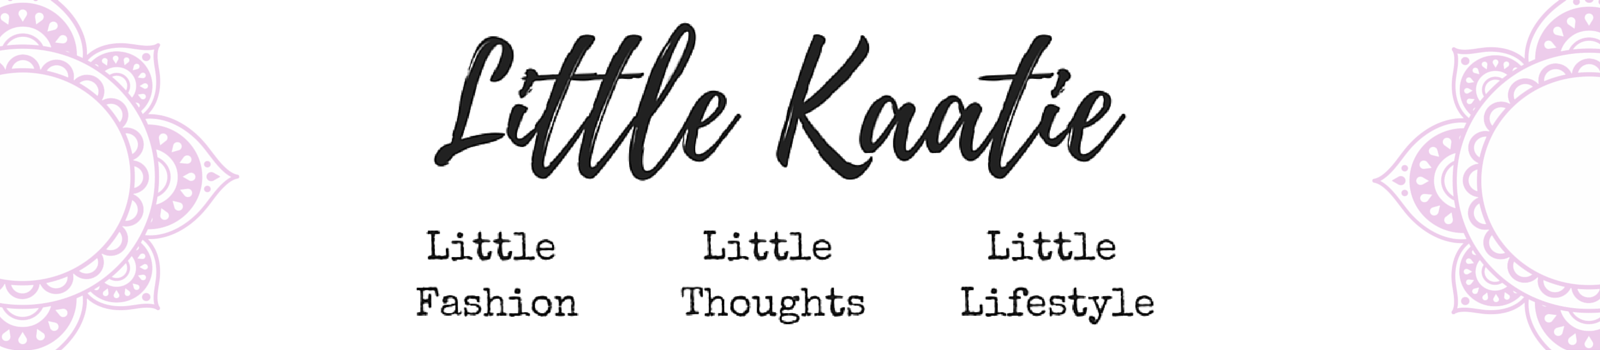 Little Katie's Little Thoughts